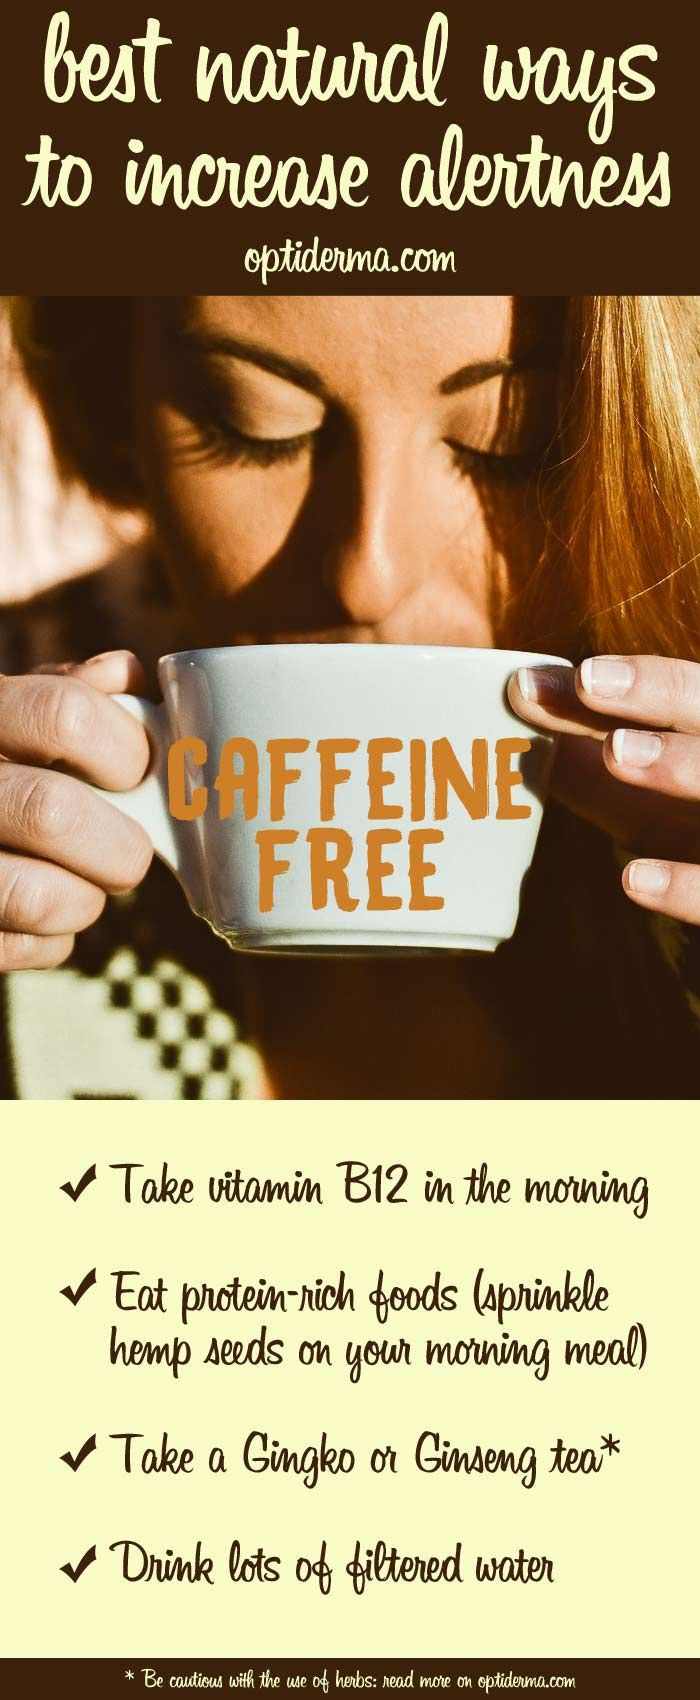 Does caffeine make you go to the bathroom - How To Make Juicing For Health A Daily Habit Do You Want To Avoid Caffeine